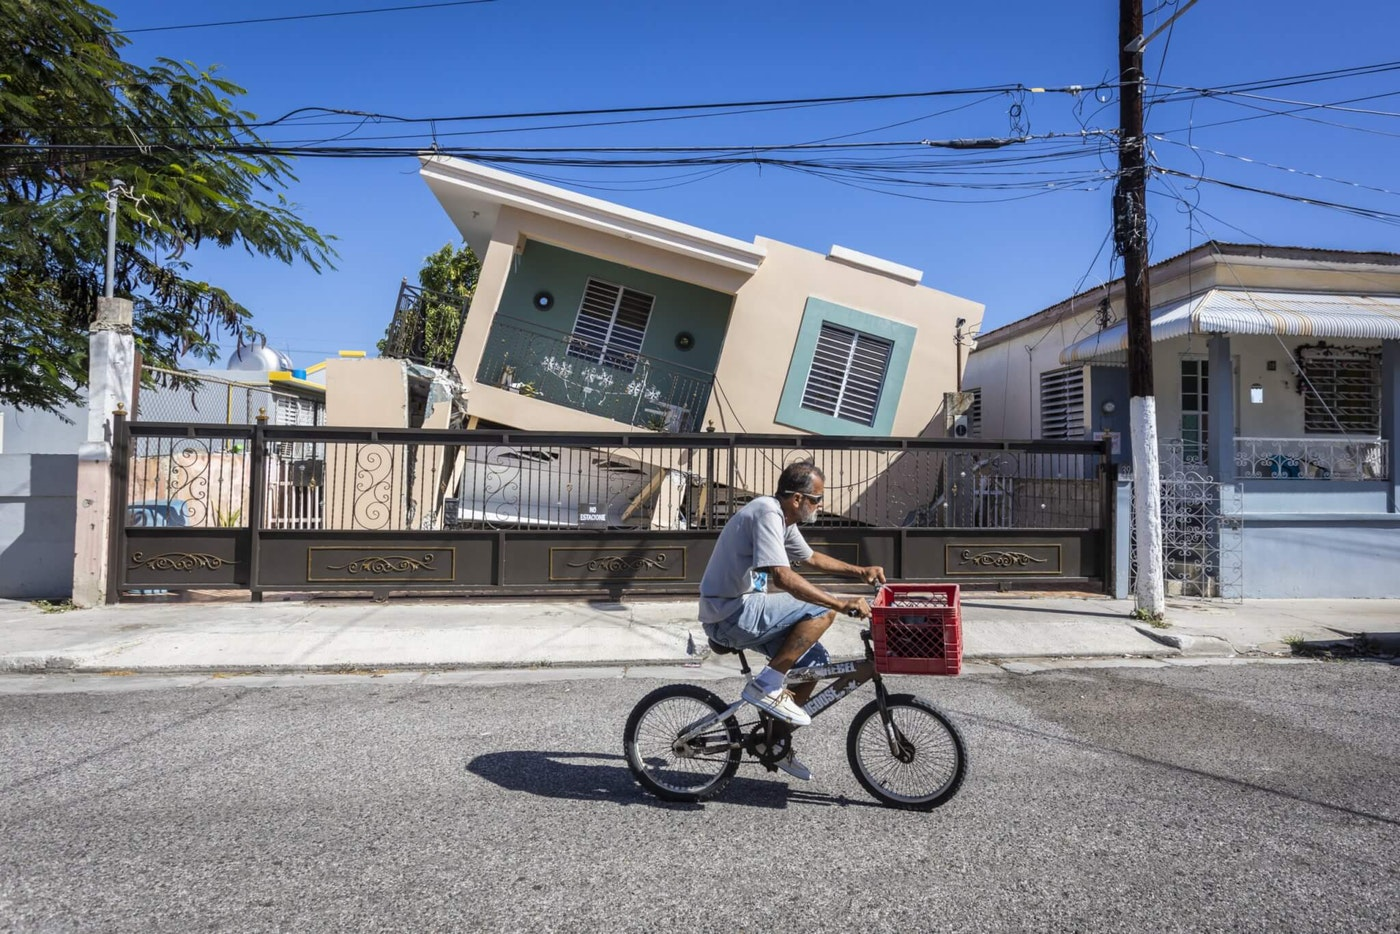 A man rides his bike in front of a collapse house after 6.4-magnitude earthquake hit Guanica, Puerto Rico on January 11, 2020.